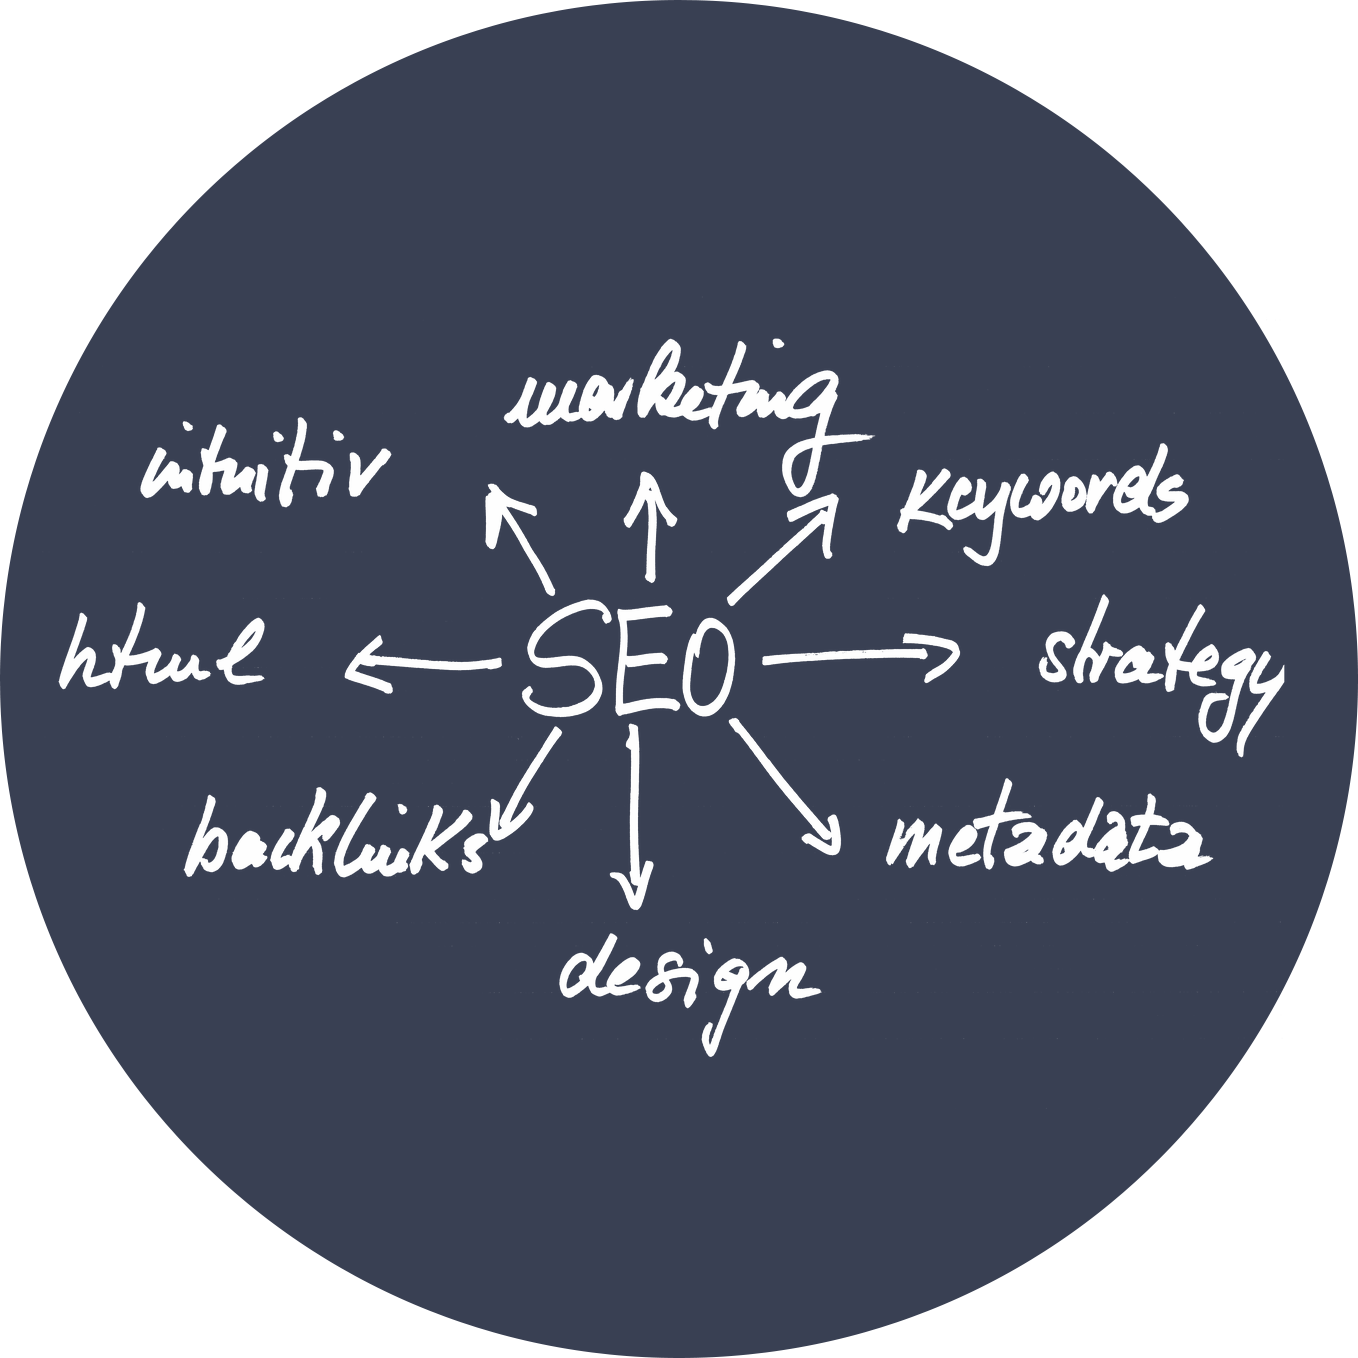 search-engine-optimization-white-circle-liloweb.com